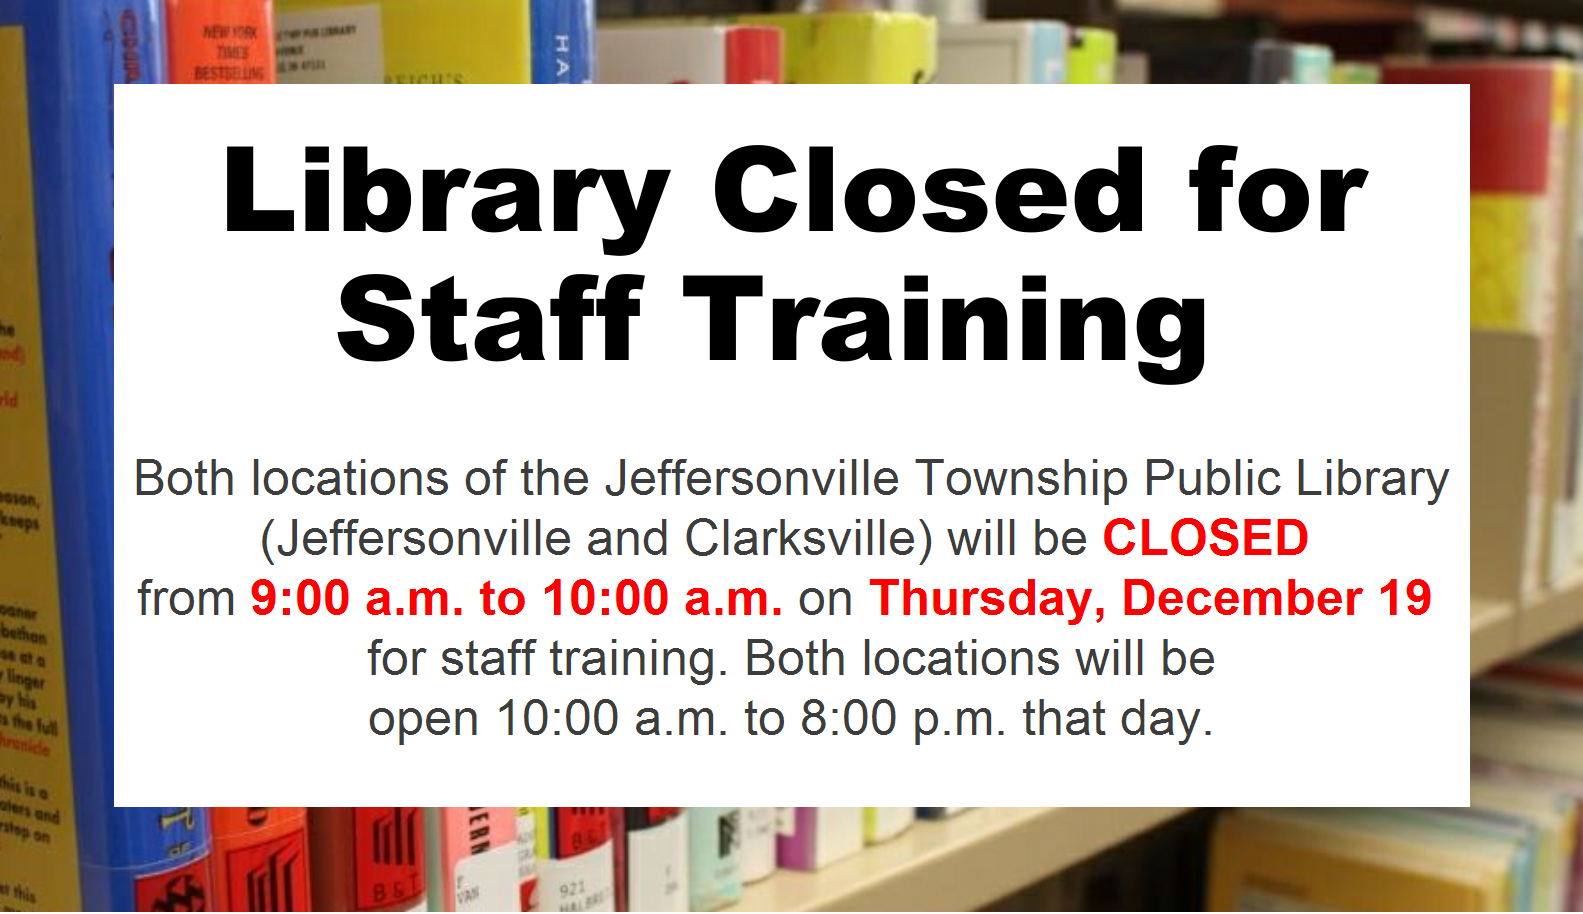 Library closed from 9-10 a.m. on December 19 for staff training